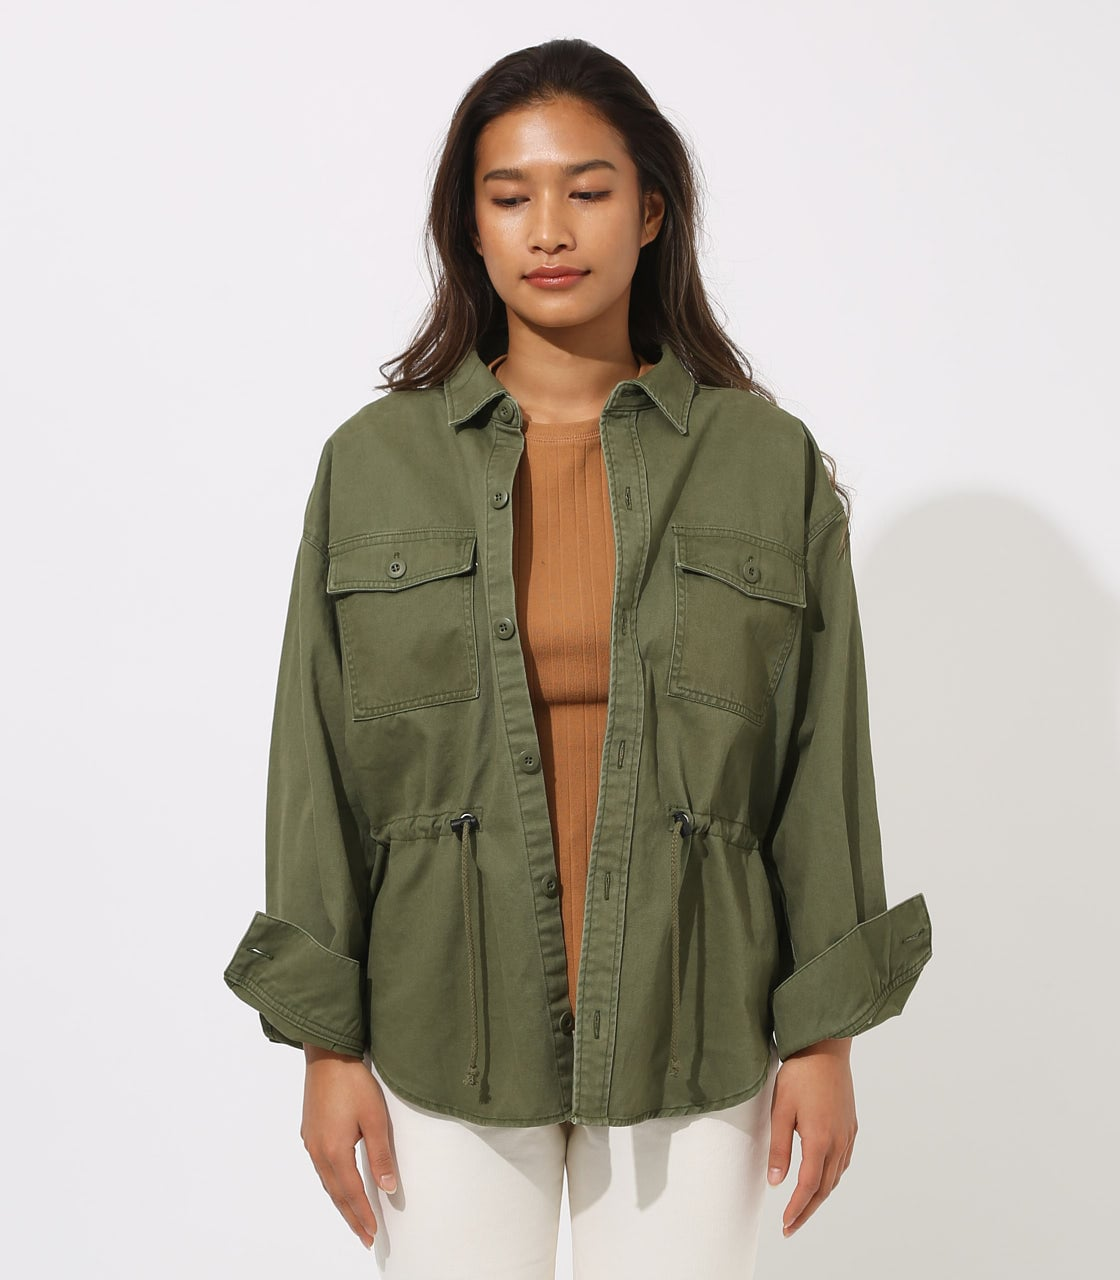 【AZUL BY MOUSSY】Military Blouson 詳細画像 L/KHA 5